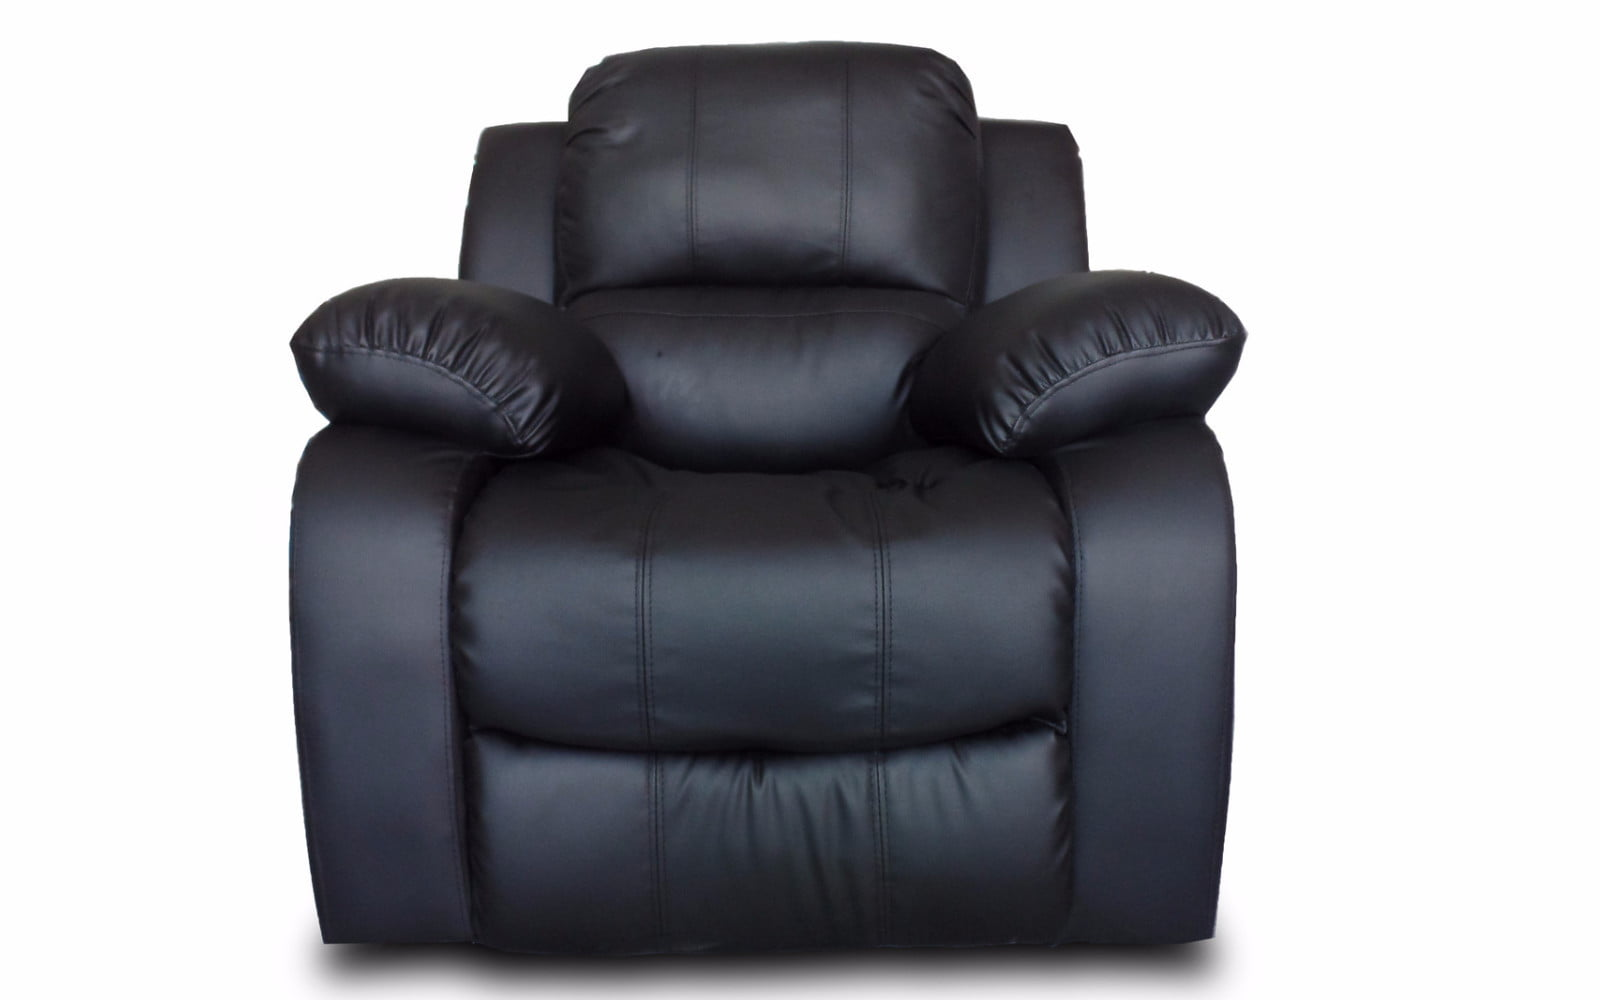 recliner prescott badcock of leather grey more picture